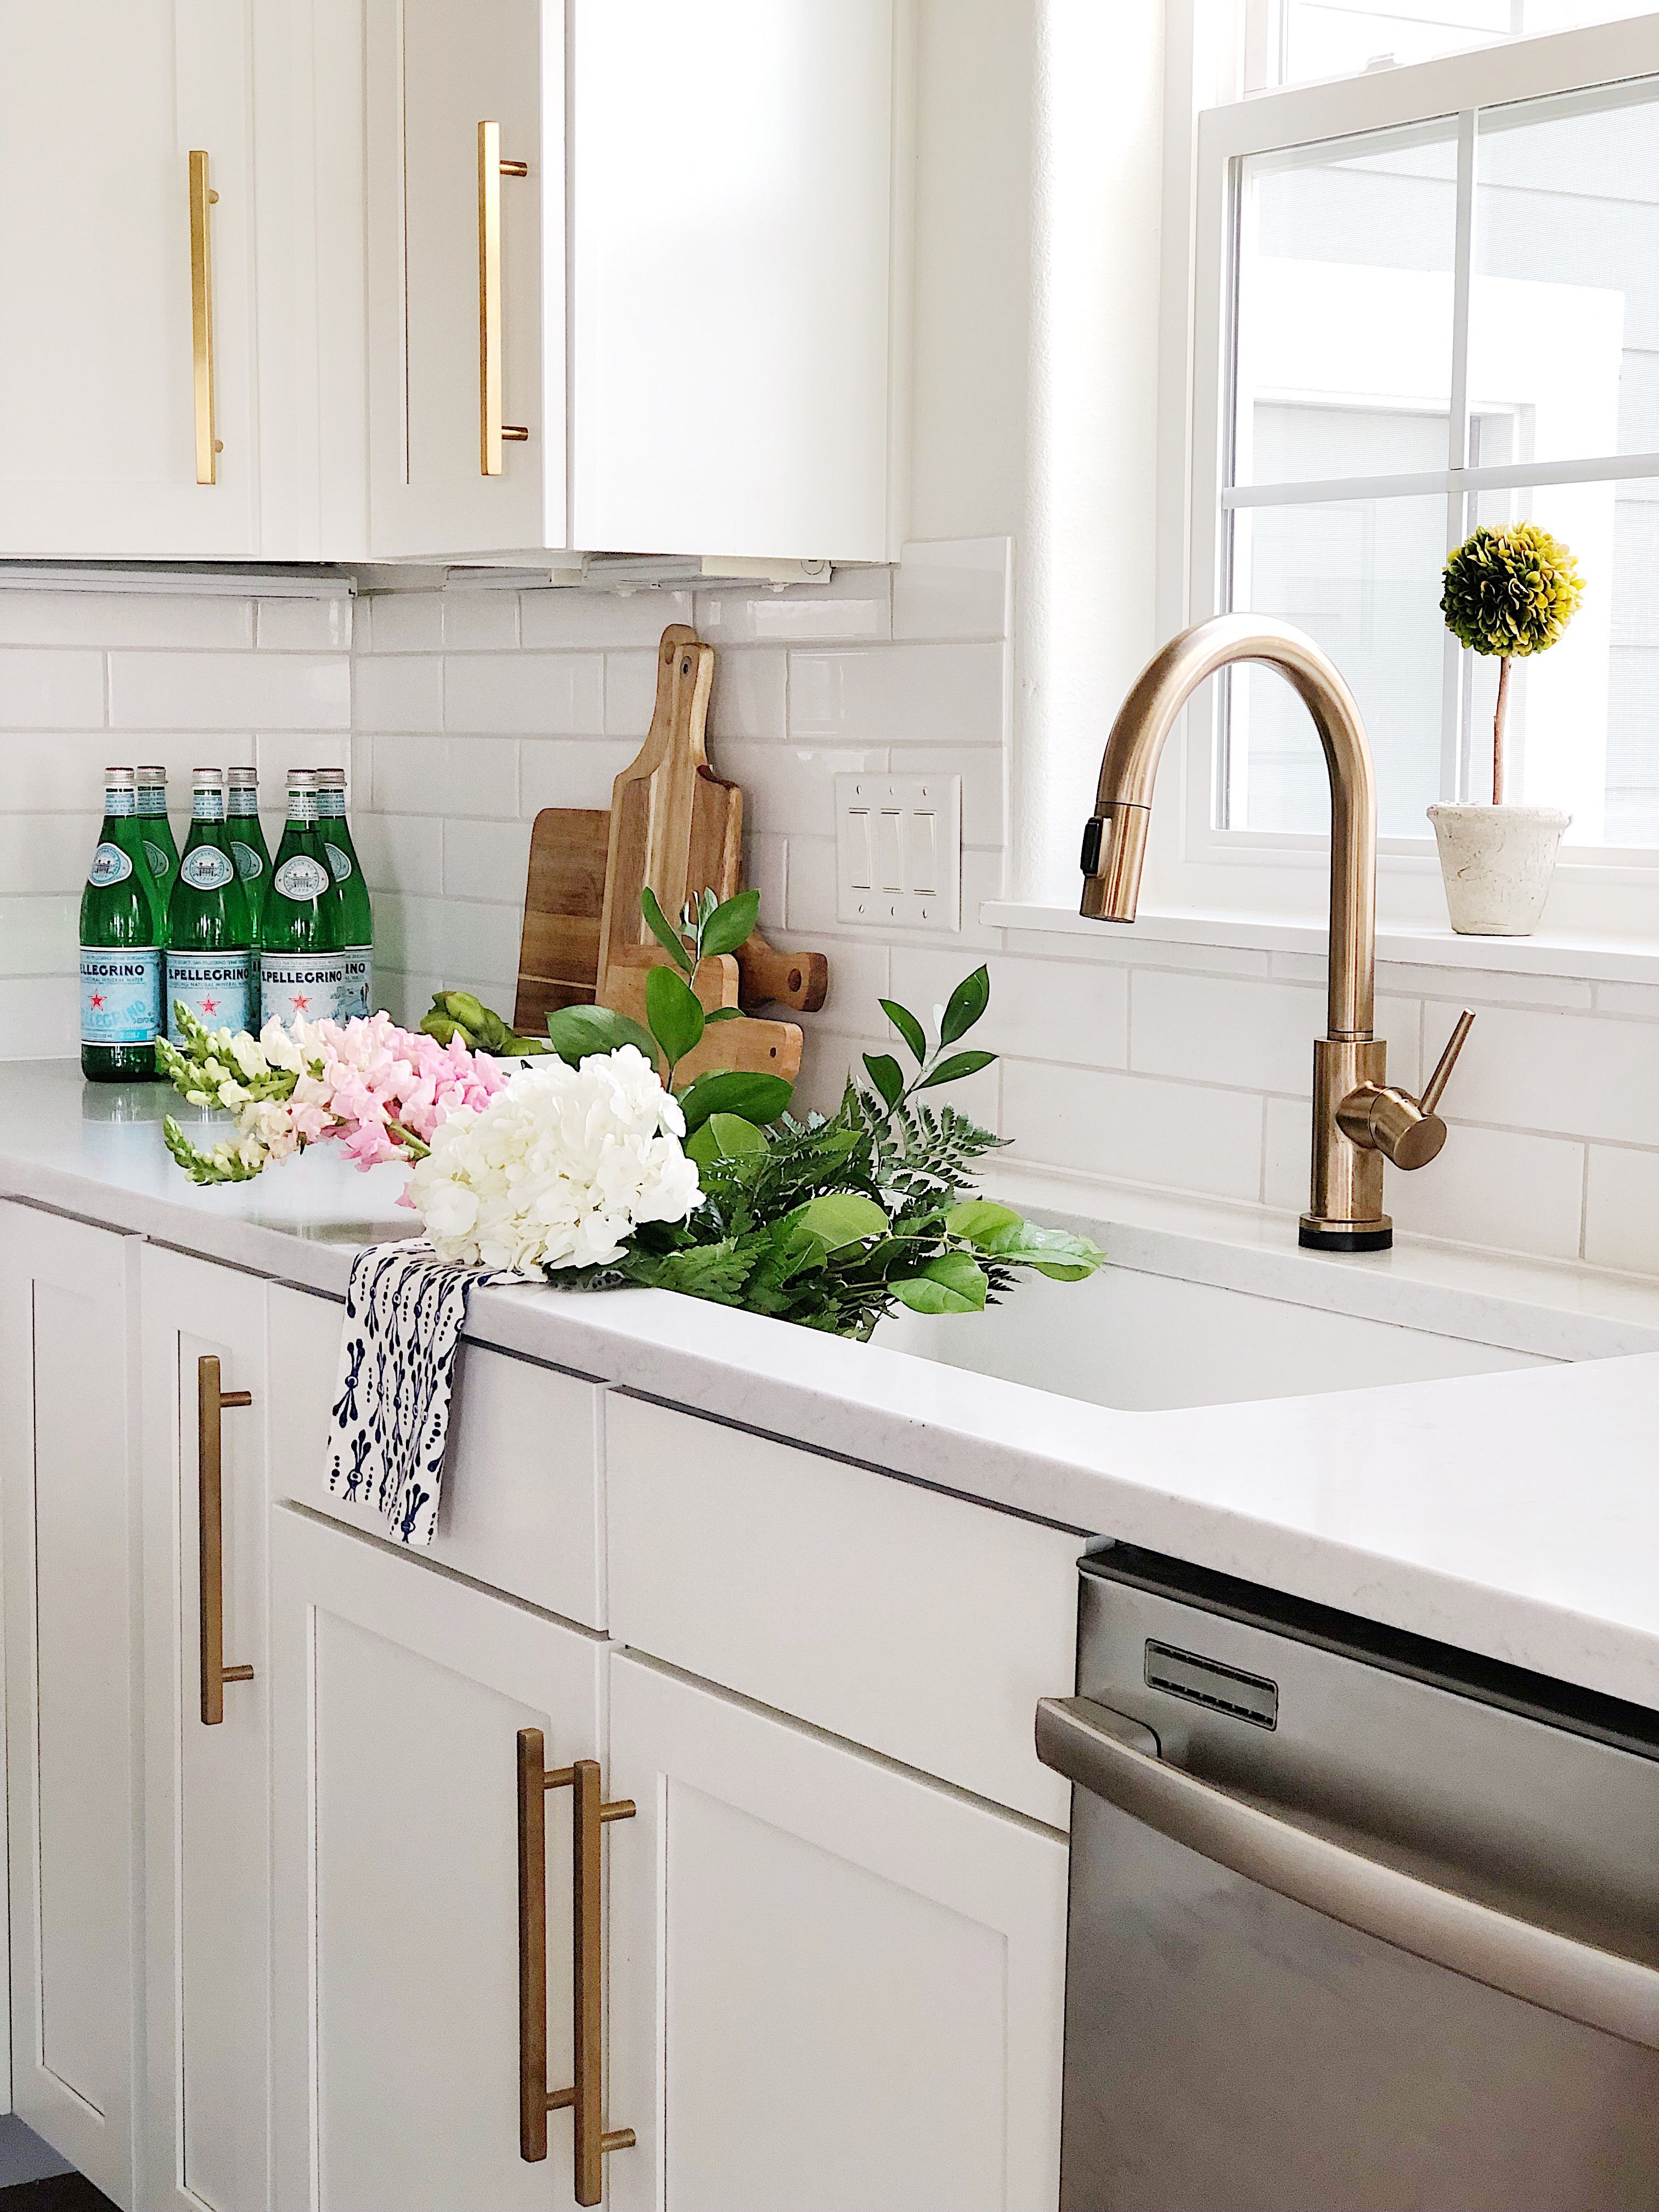 Spring Kitchen Refresh With Serena And Lily Jane At Home Kitchen Refresh Updated Kitchen Kitchen Remodel